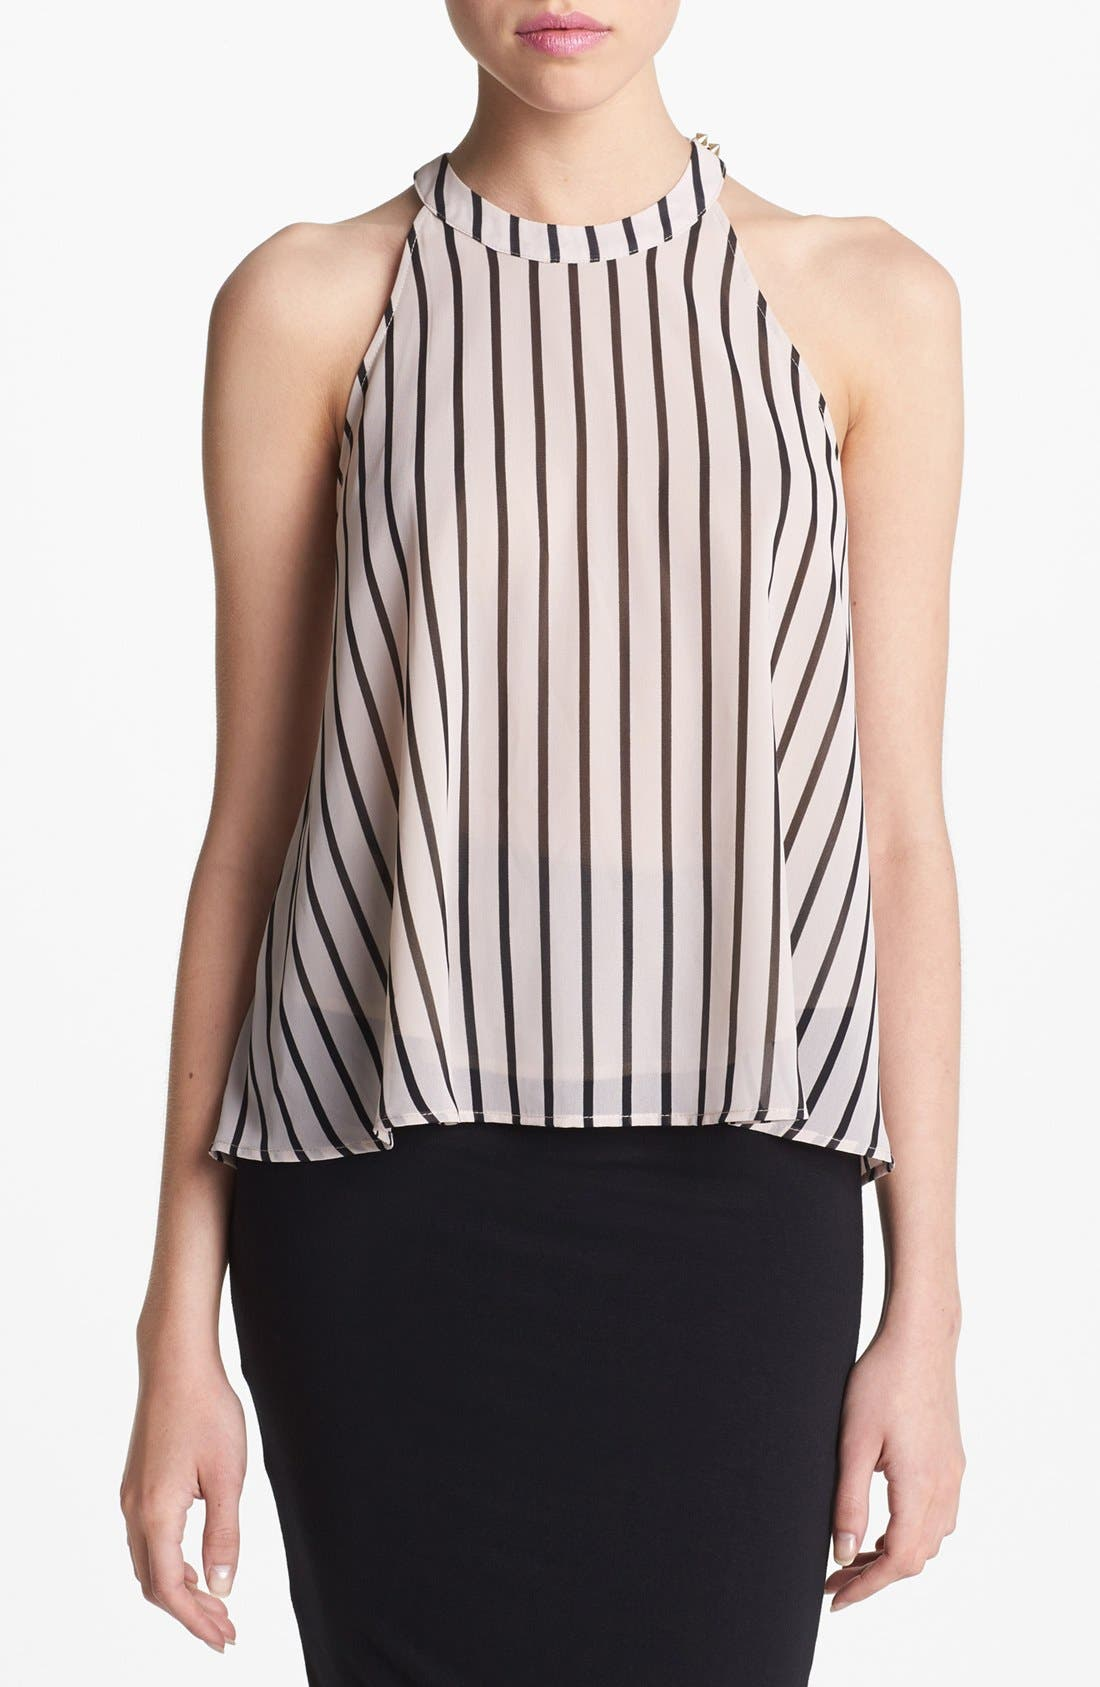 Alternate Image 1 Selected - ASTR Stripe Racerback Tank